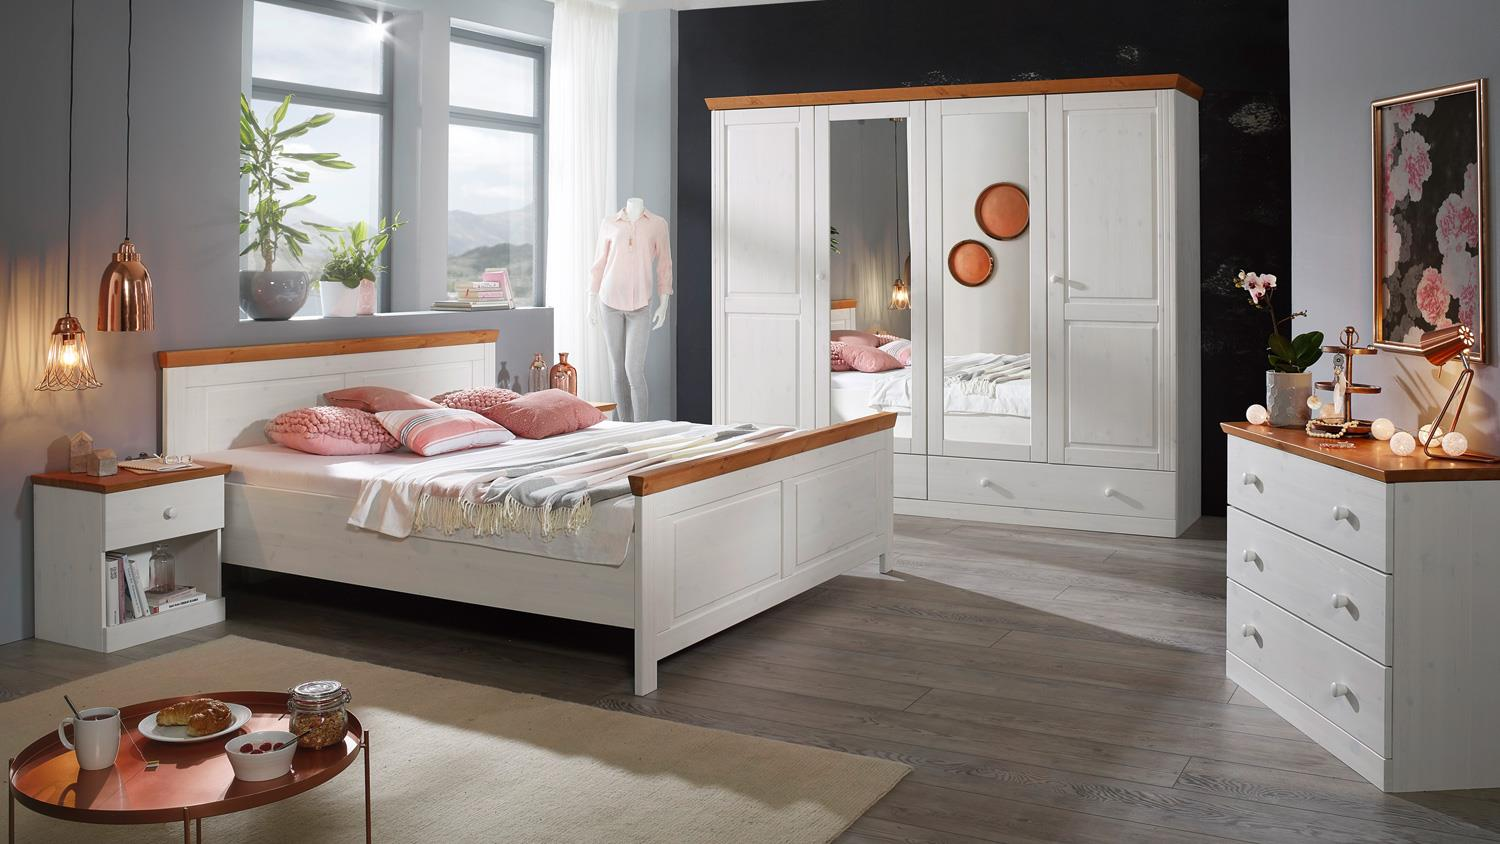 bettgestell genia kiefer massiv wei und honig 180x200 cm landhausstil. Black Bedroom Furniture Sets. Home Design Ideas